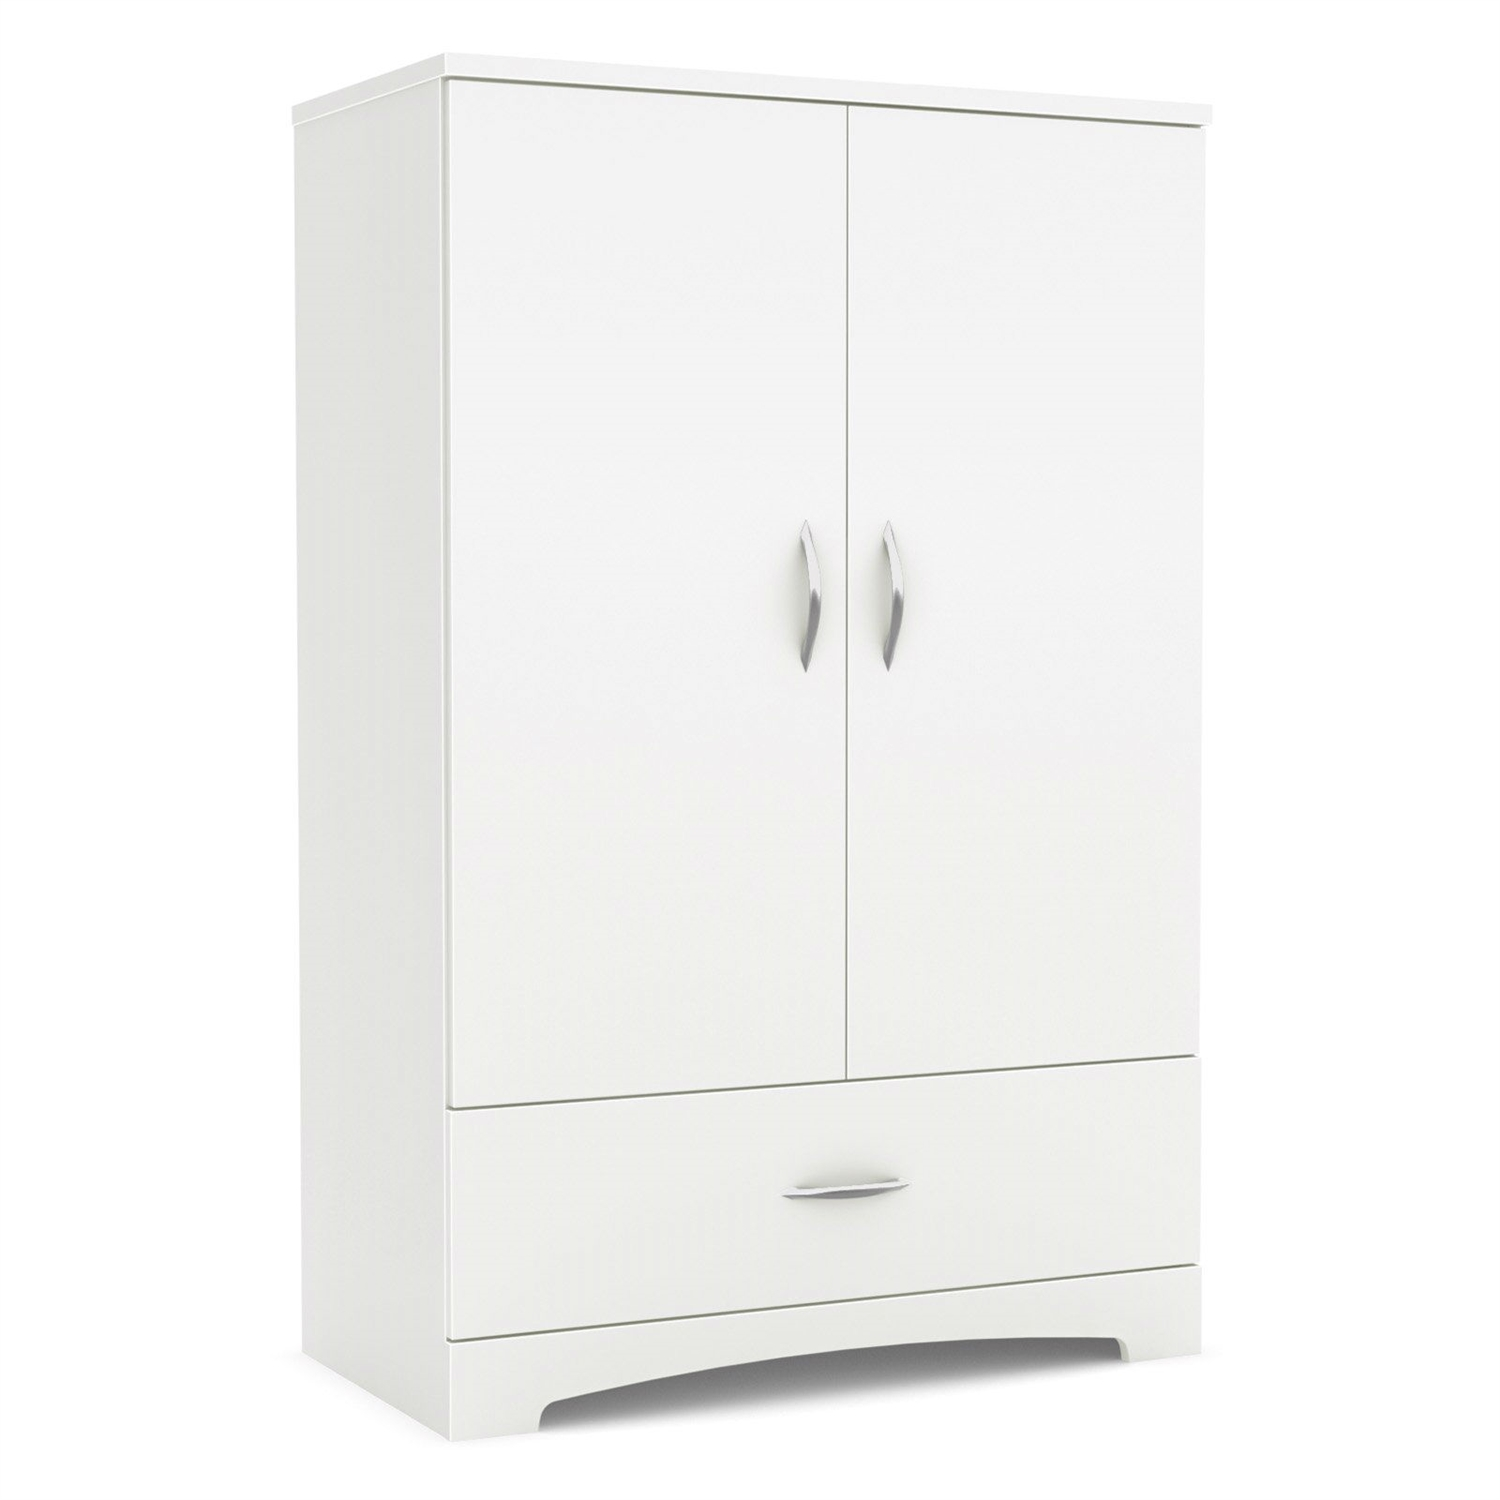 white wardrobe home elite inch cabinet product shipping winslow free garden today